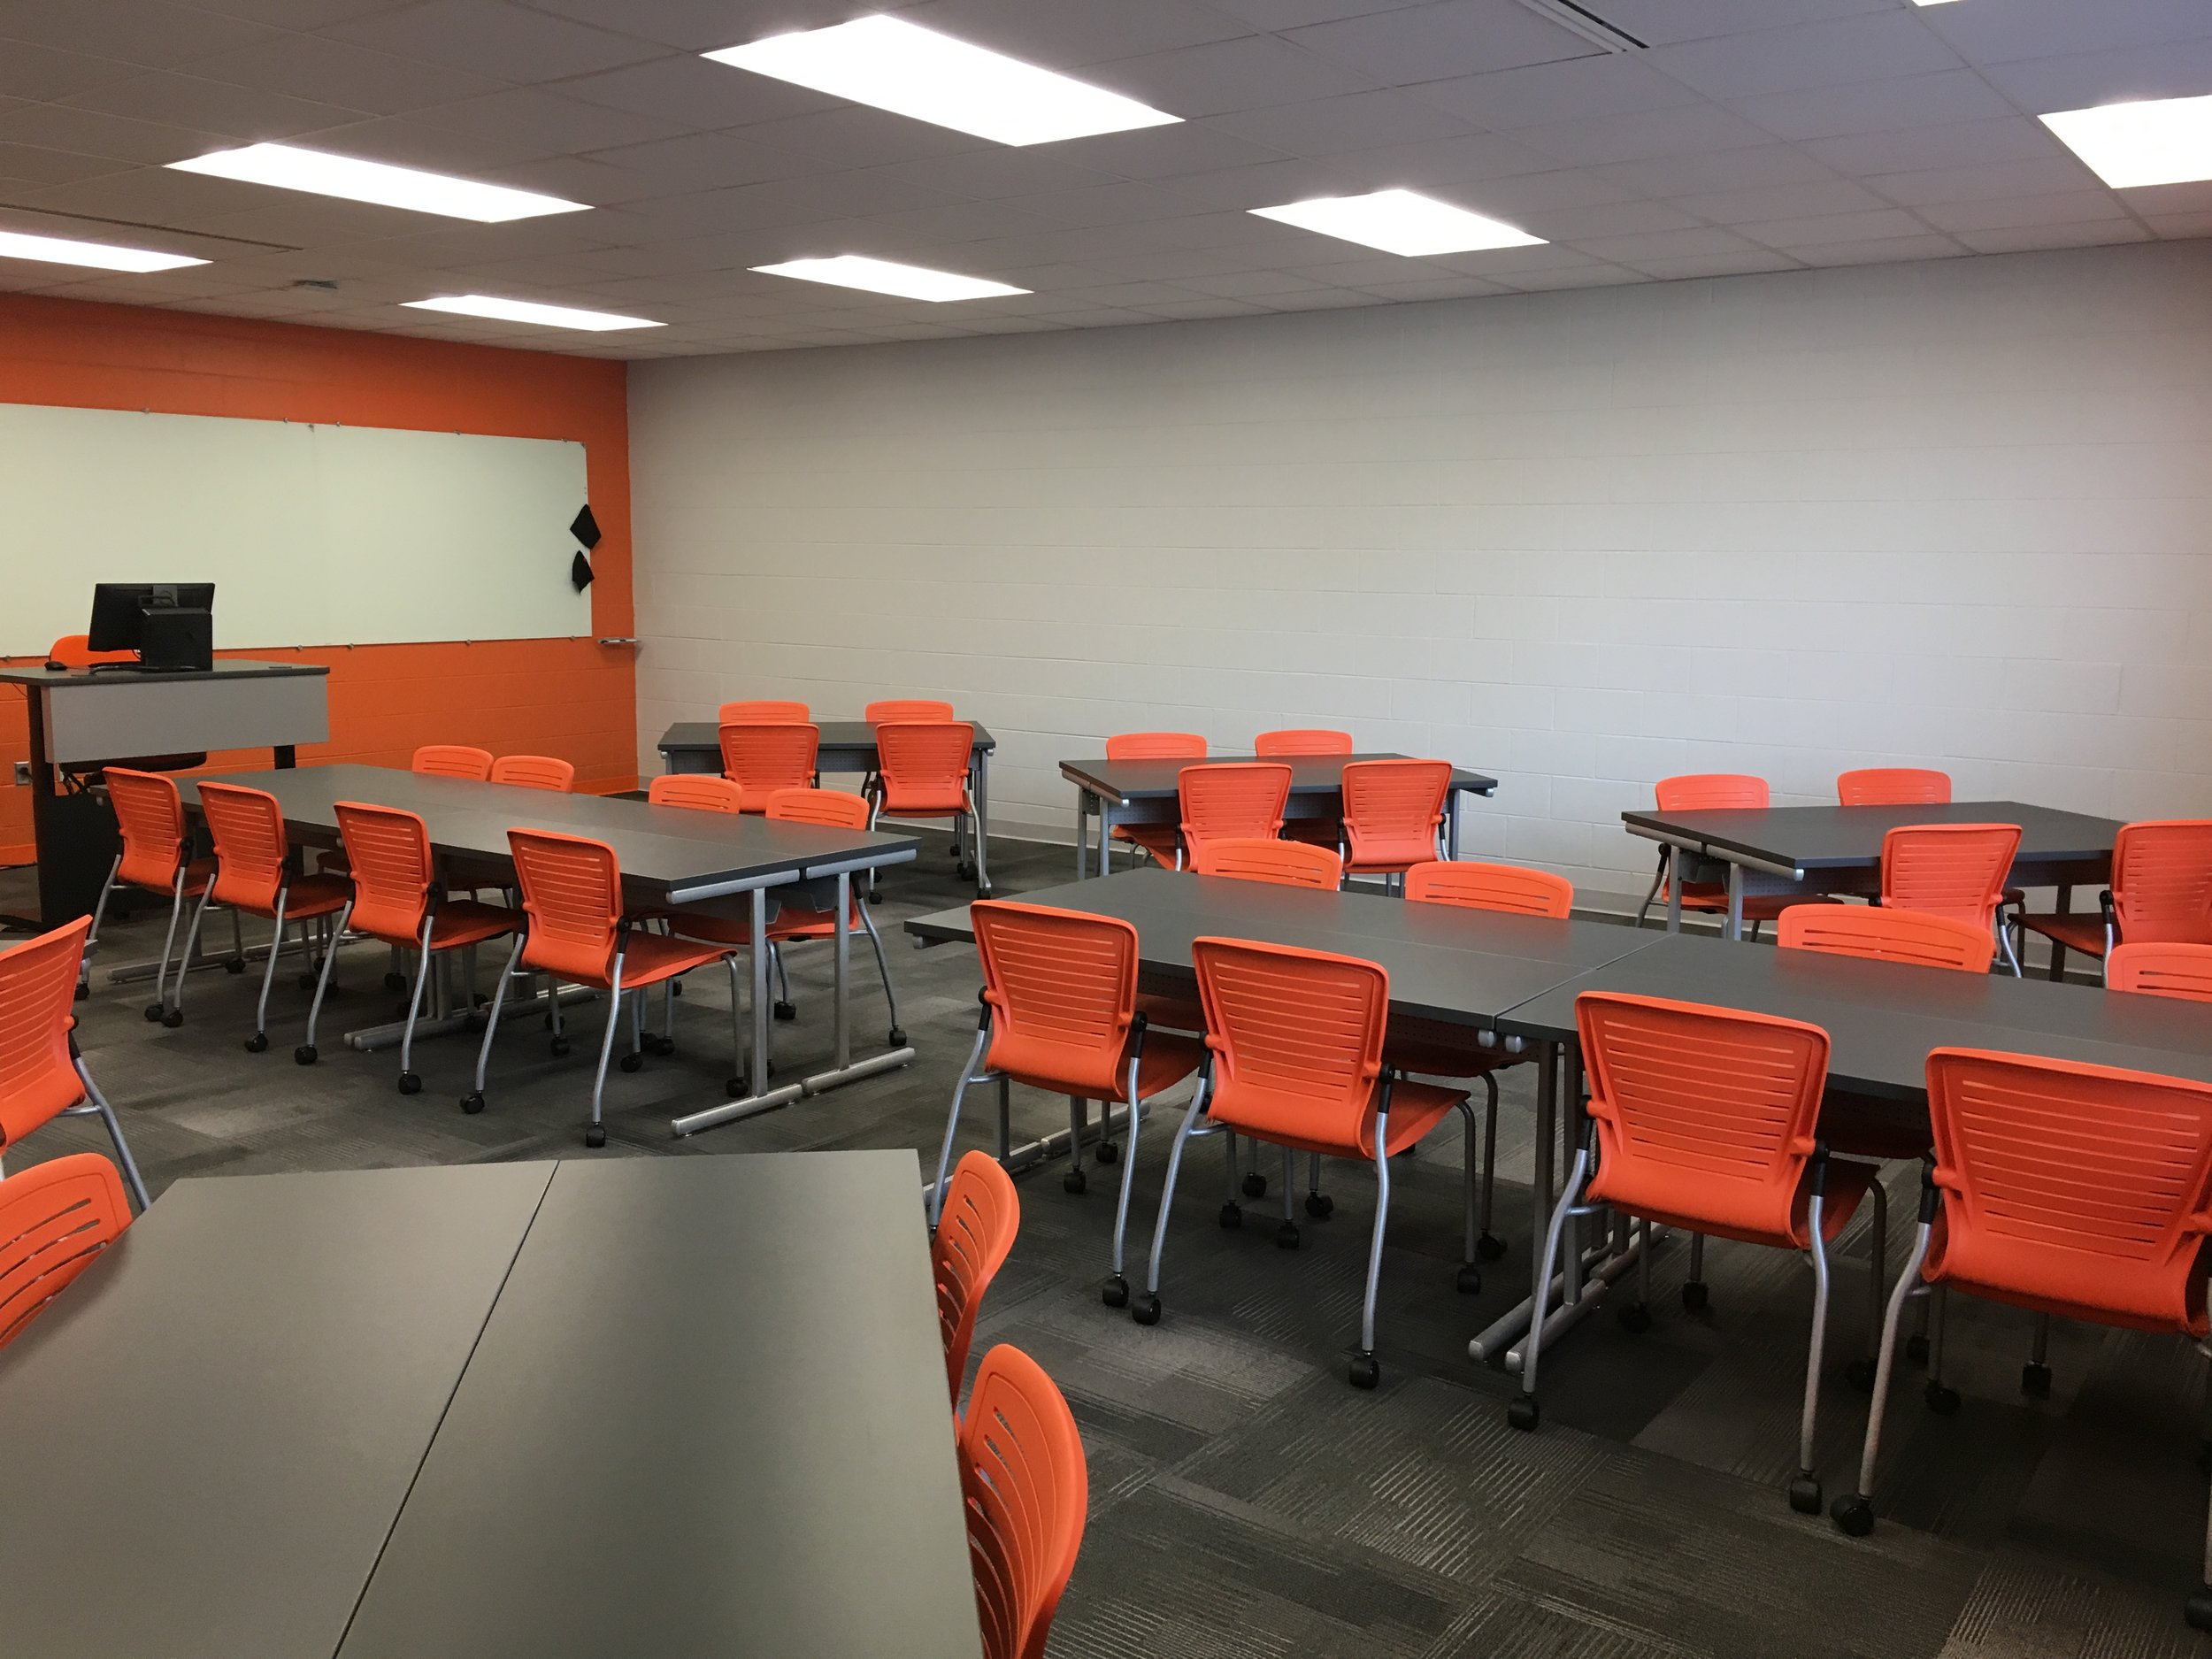 Jacksonville State University - Active Learning Table Install Pic 24.JPG